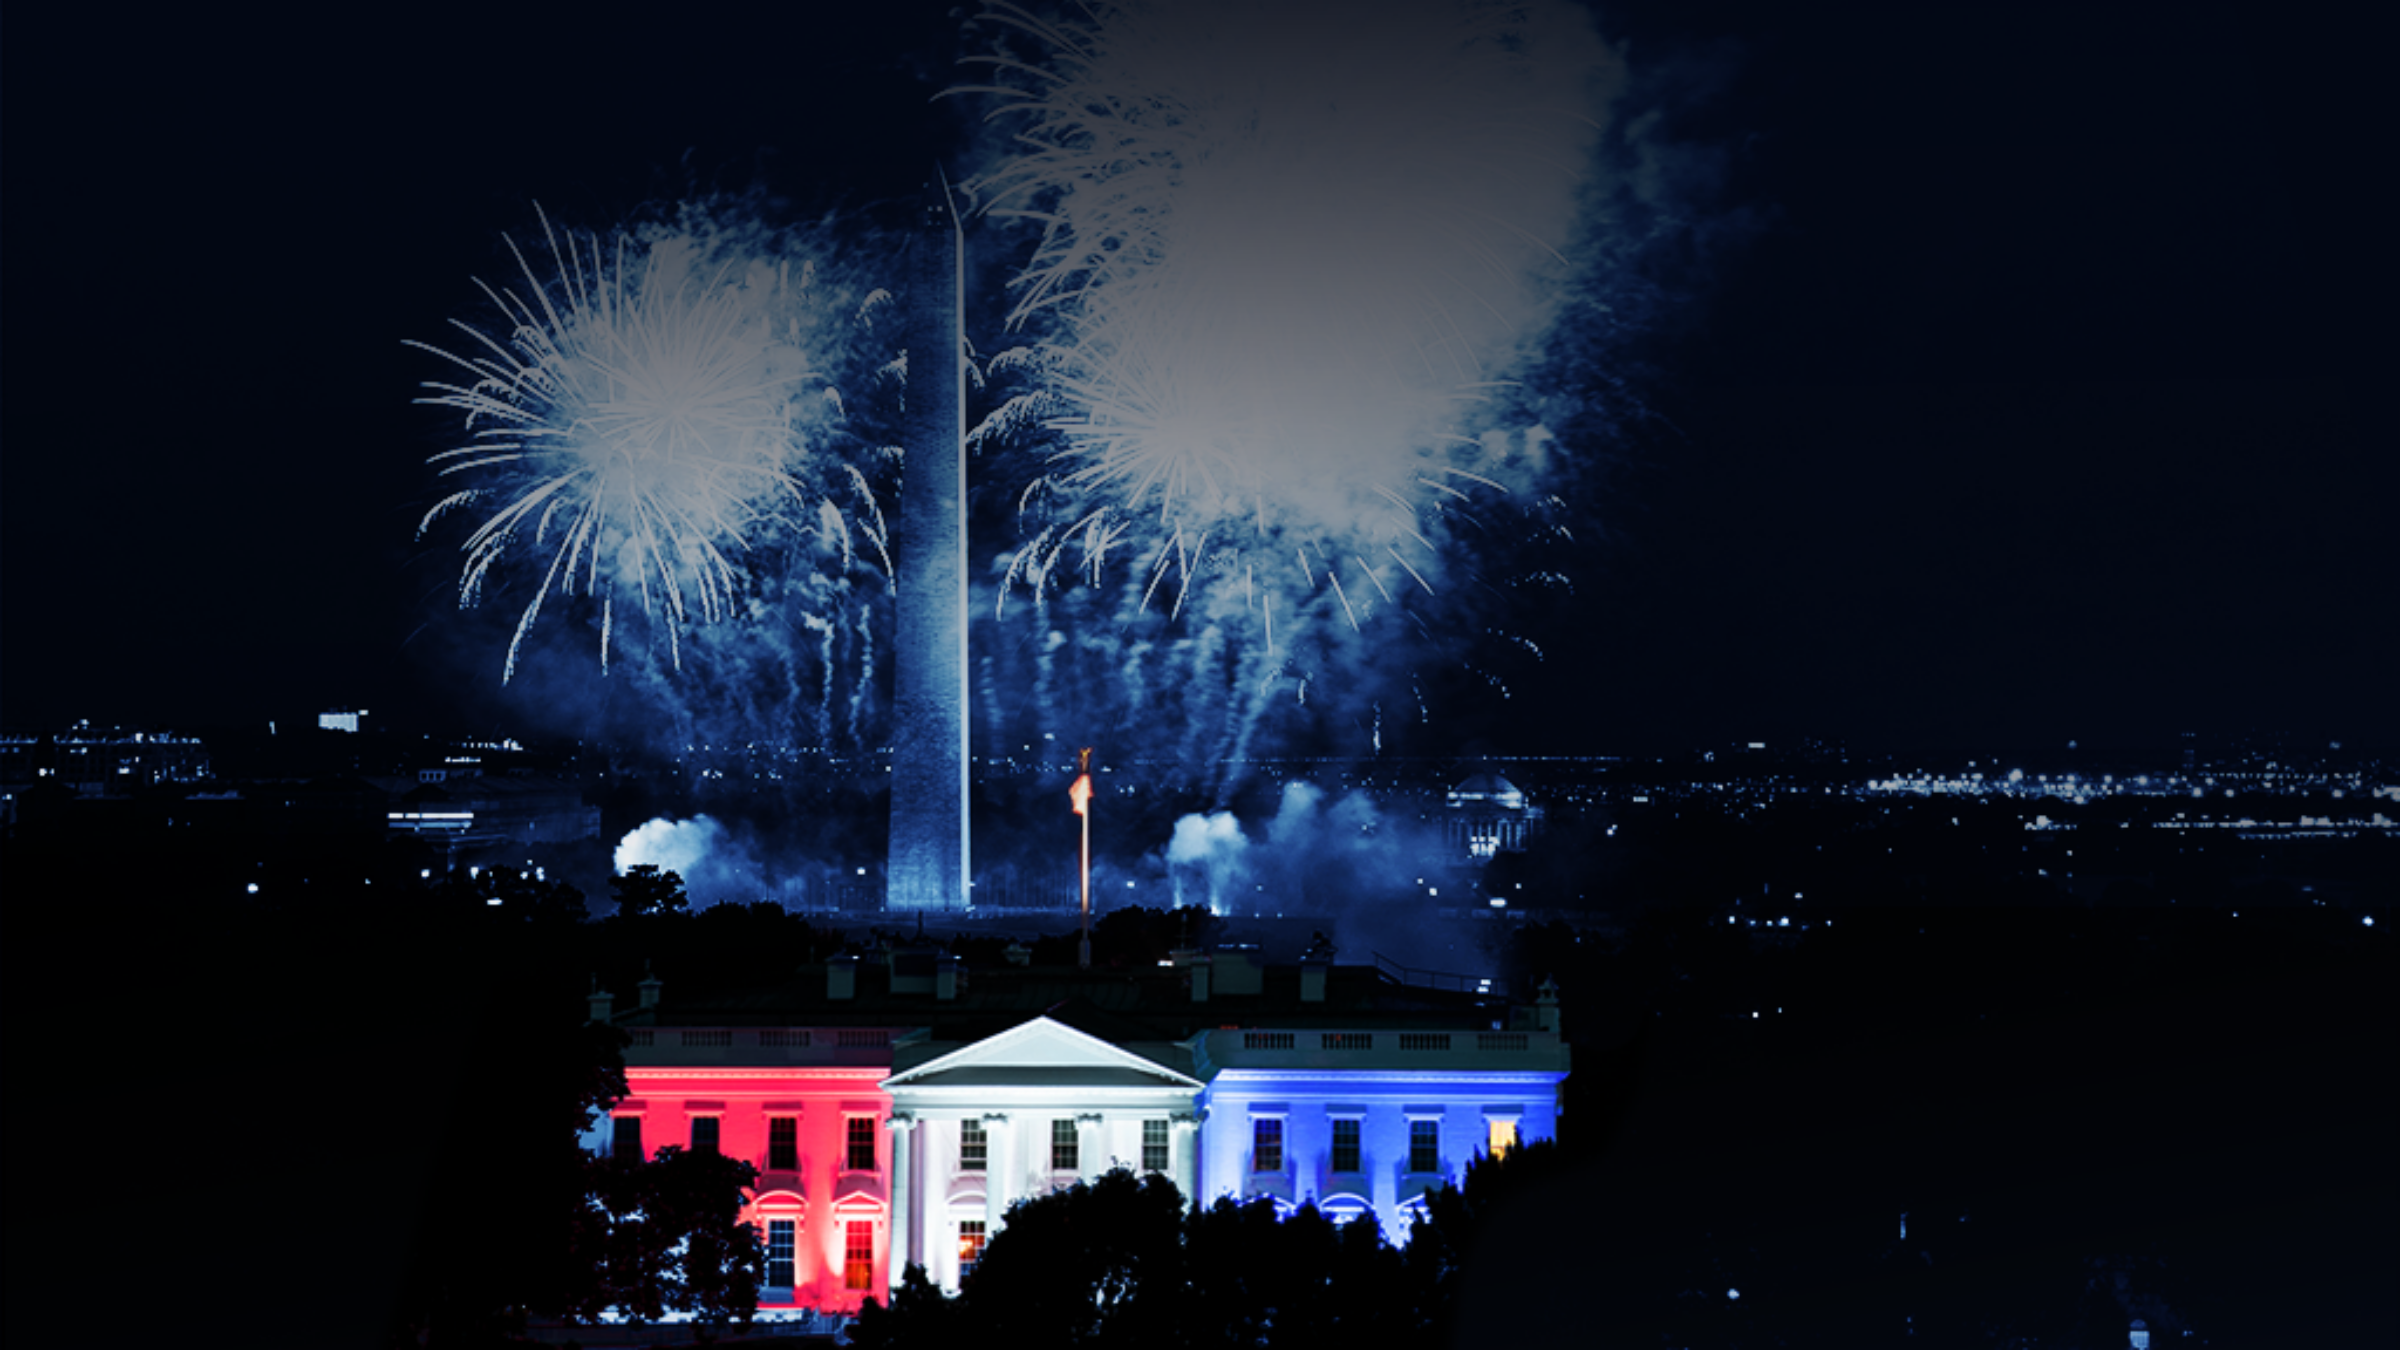 Fireworks behind White House. Everything is tinted navy except White House.